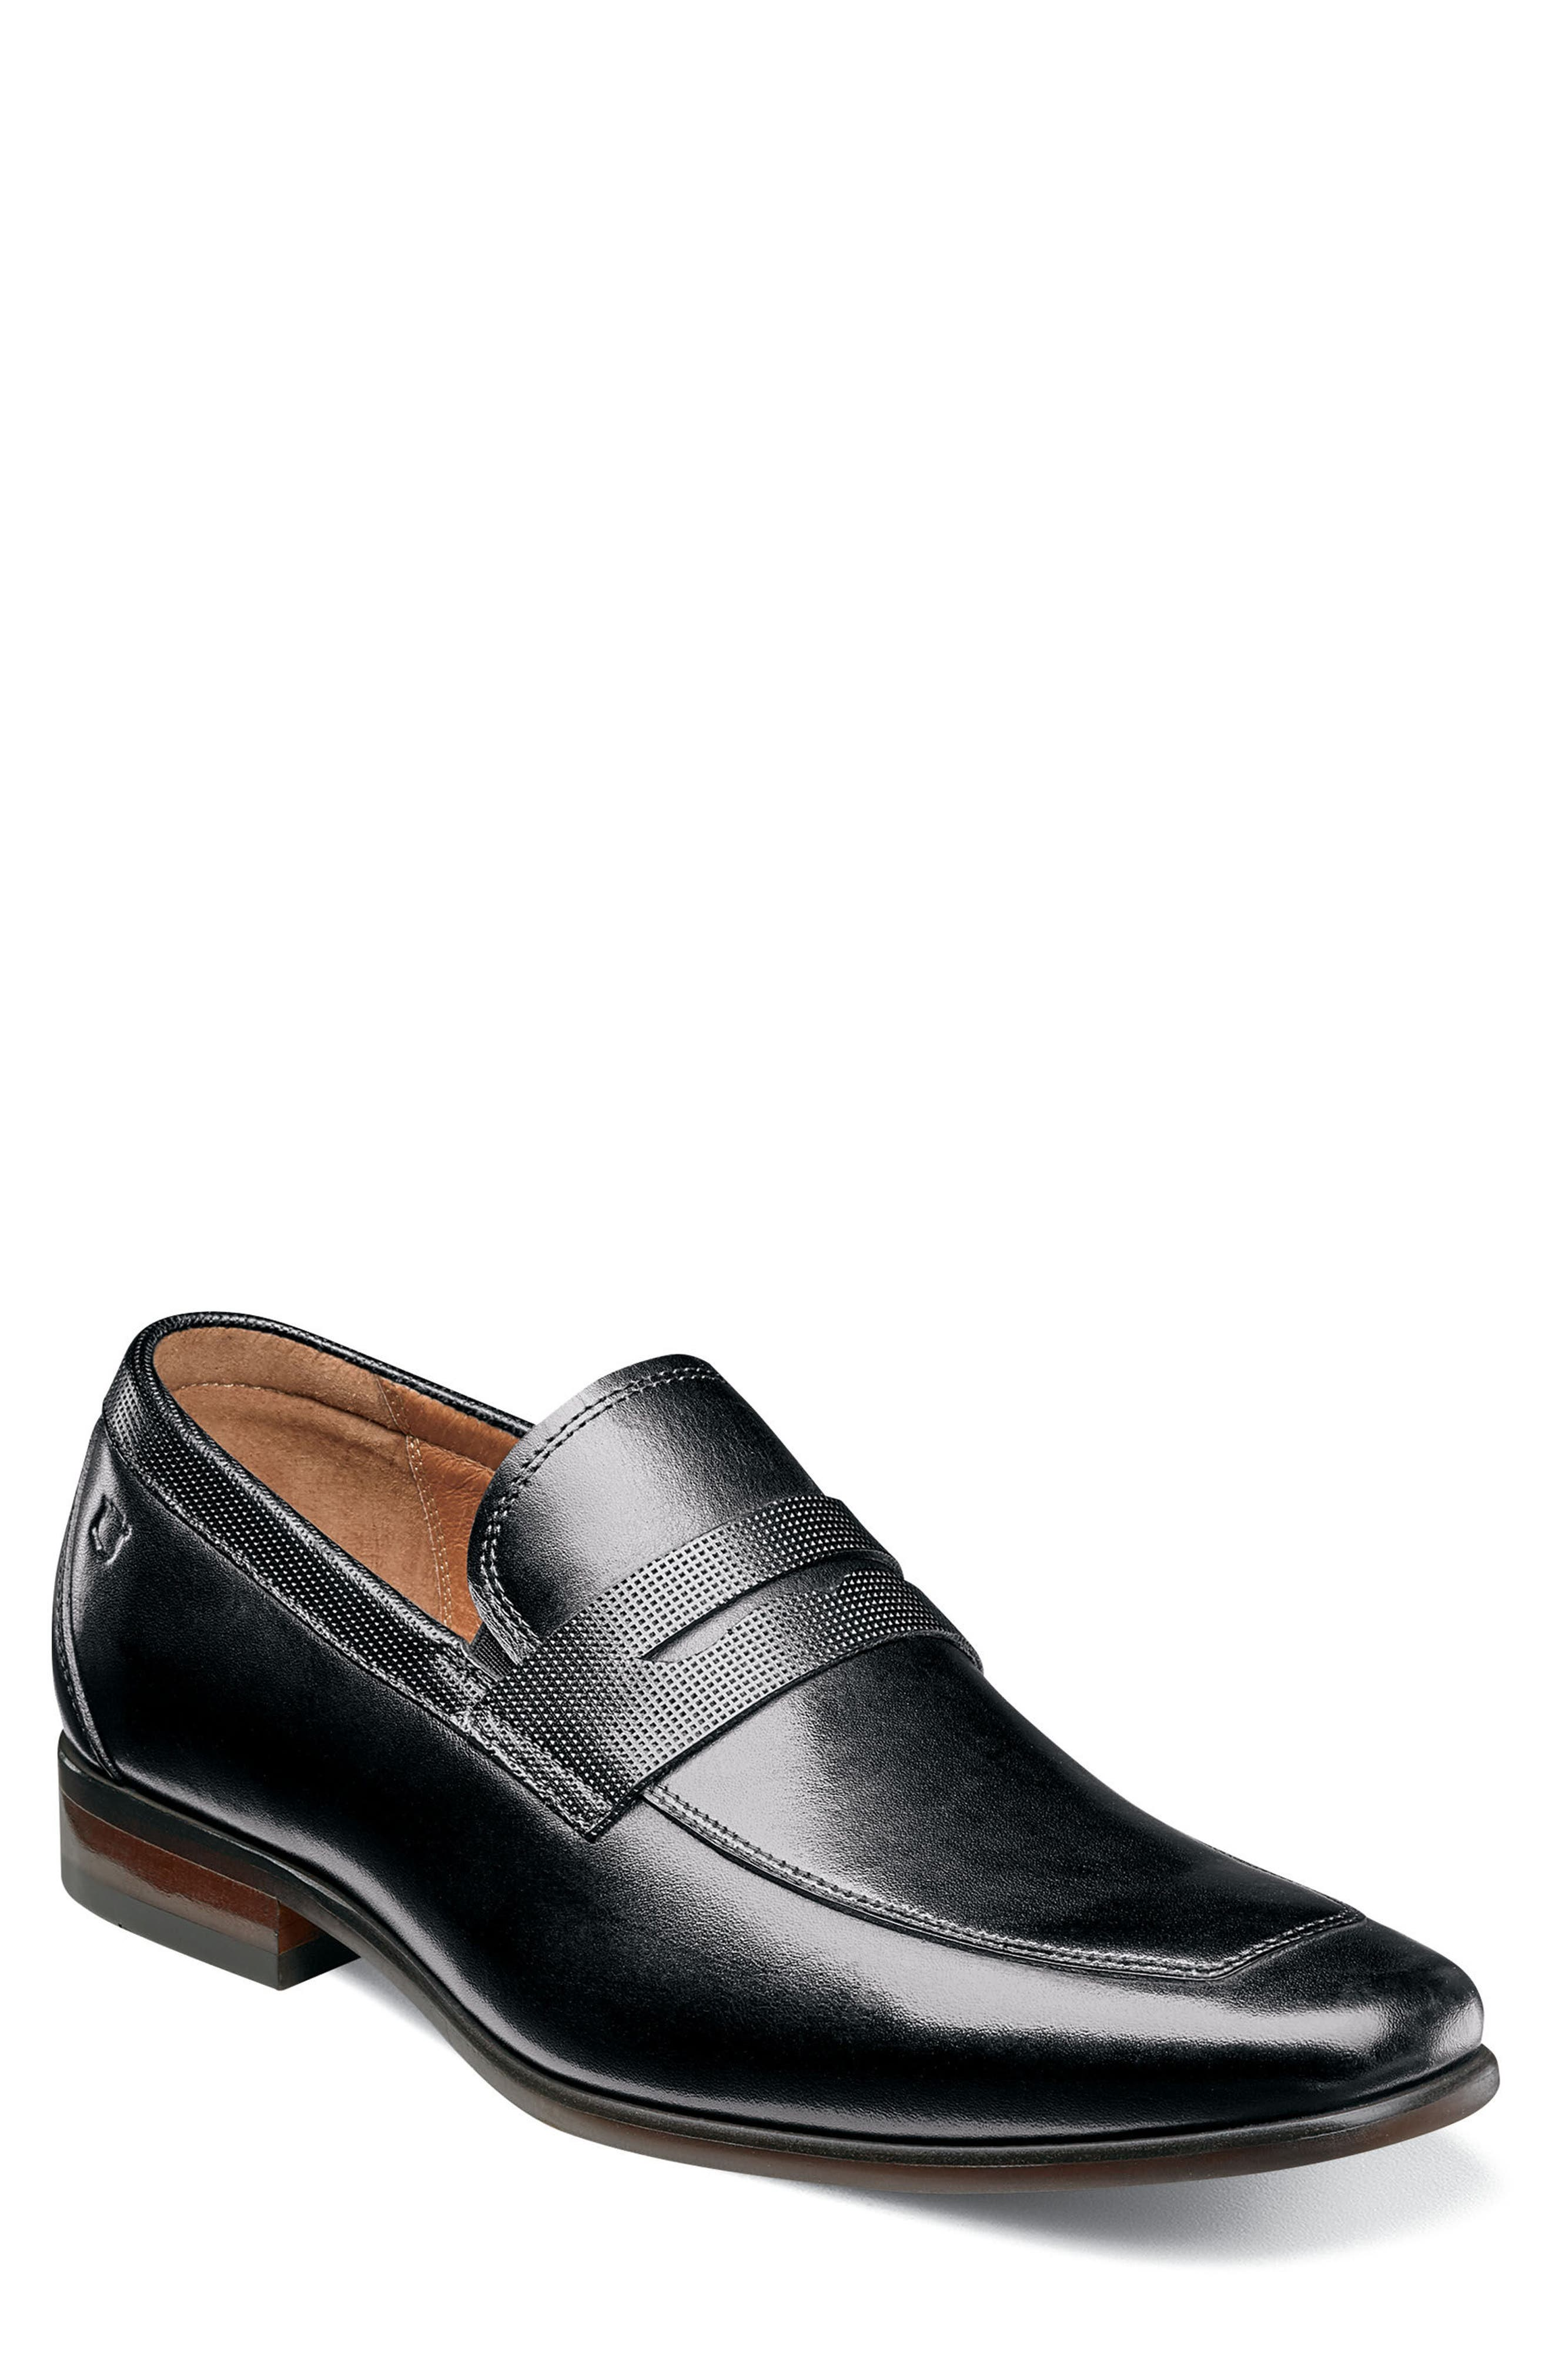 Postino Apron Toe Textured Penny Loafer,                             Main thumbnail 1, color,                             Black Leather